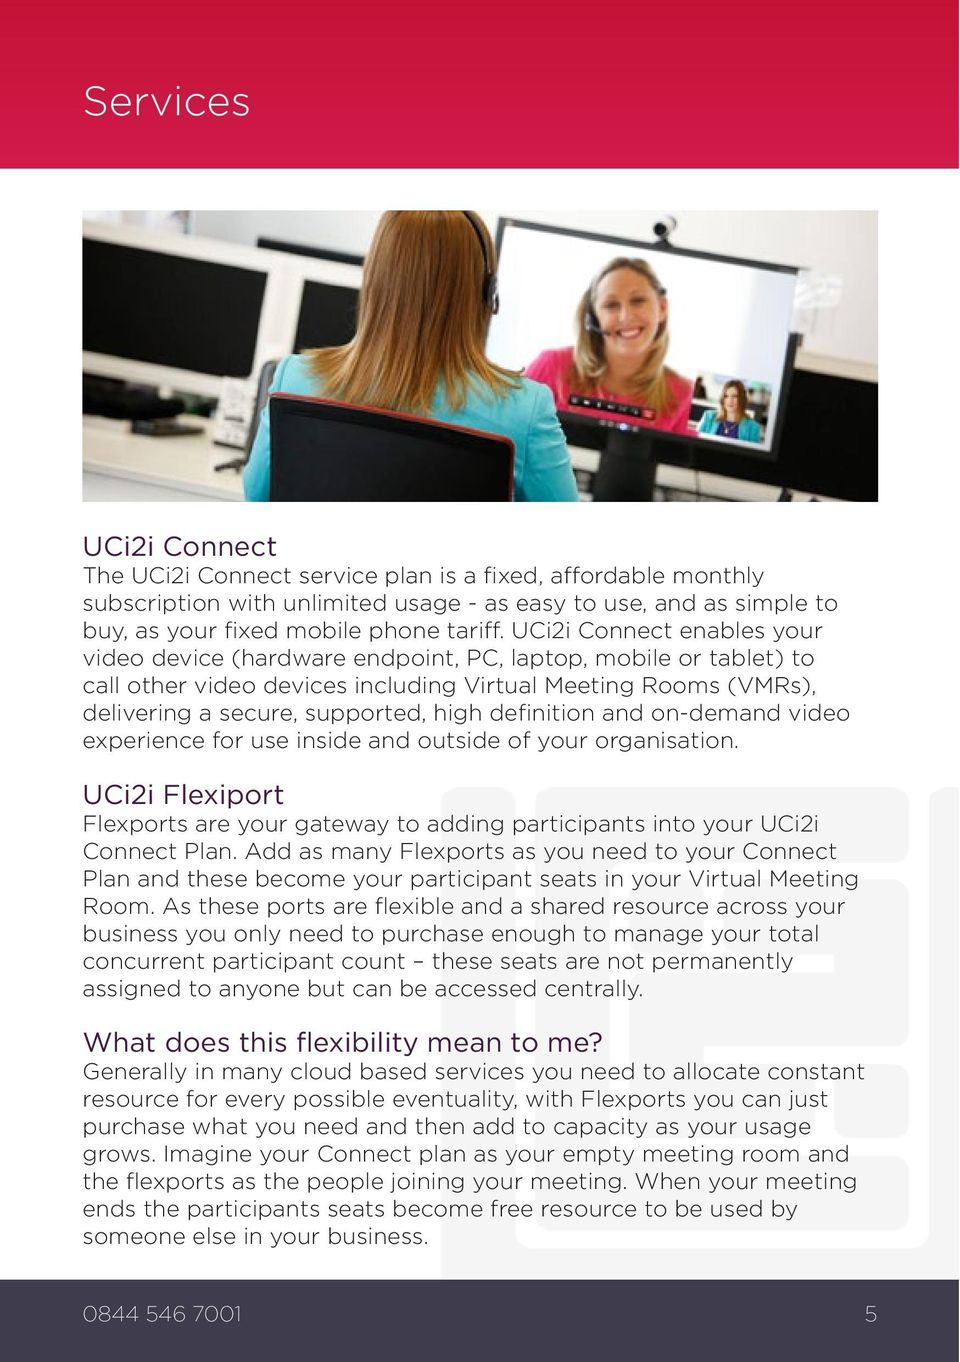 definition and on-demand video experience for use inside and outside of your organisation. UCi2i Flexiport Flexports are your gateway to adding participants into your UCi2i Connect Plan.